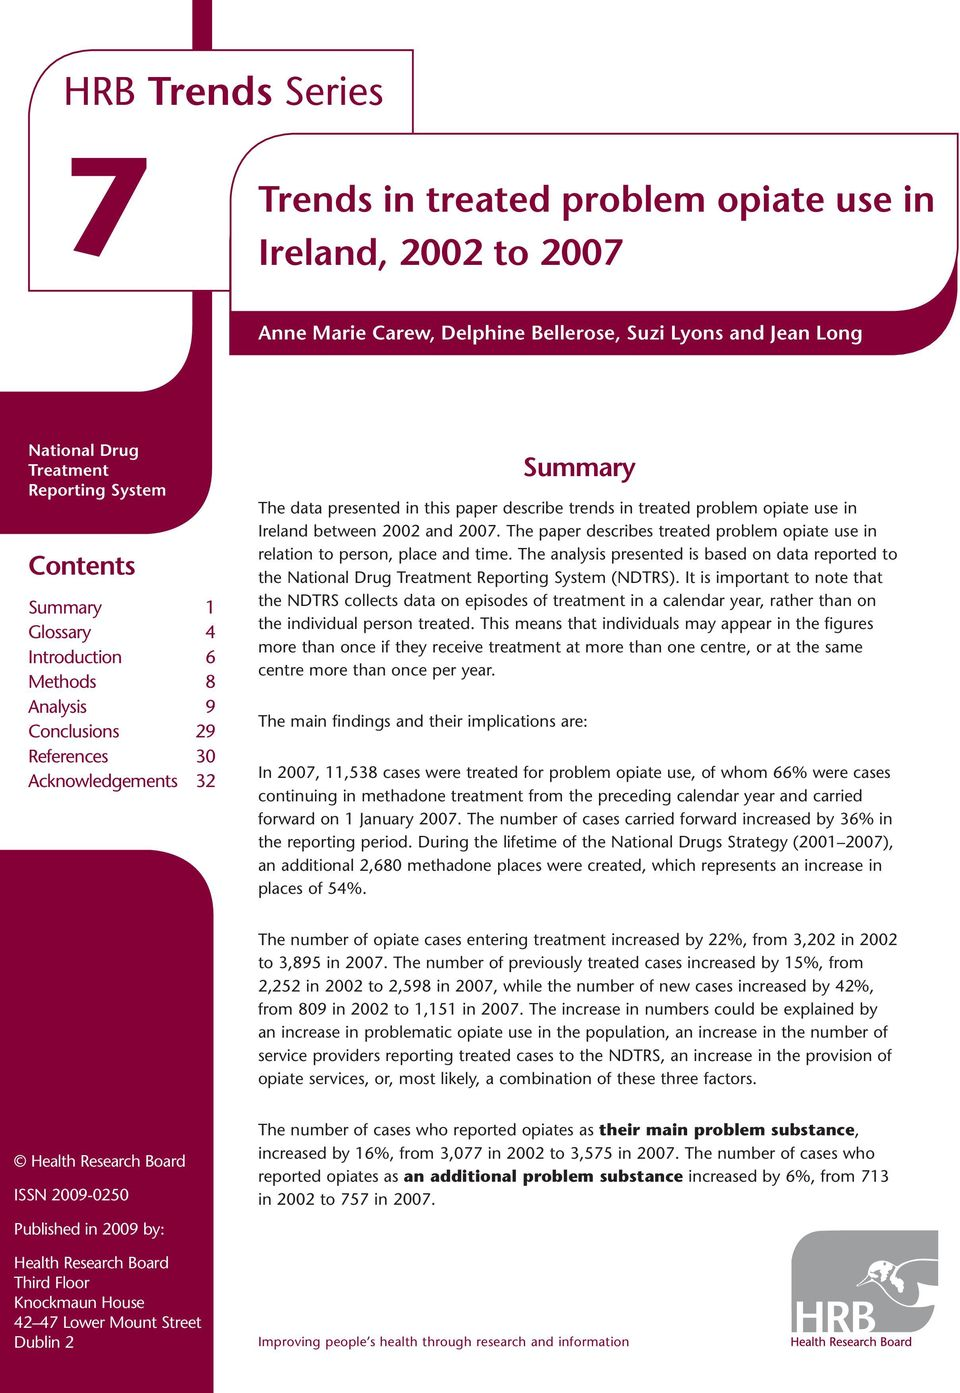 Ireland between 2002 and 2007. The paper describes treated problem opiate use in relation to person, place and time.